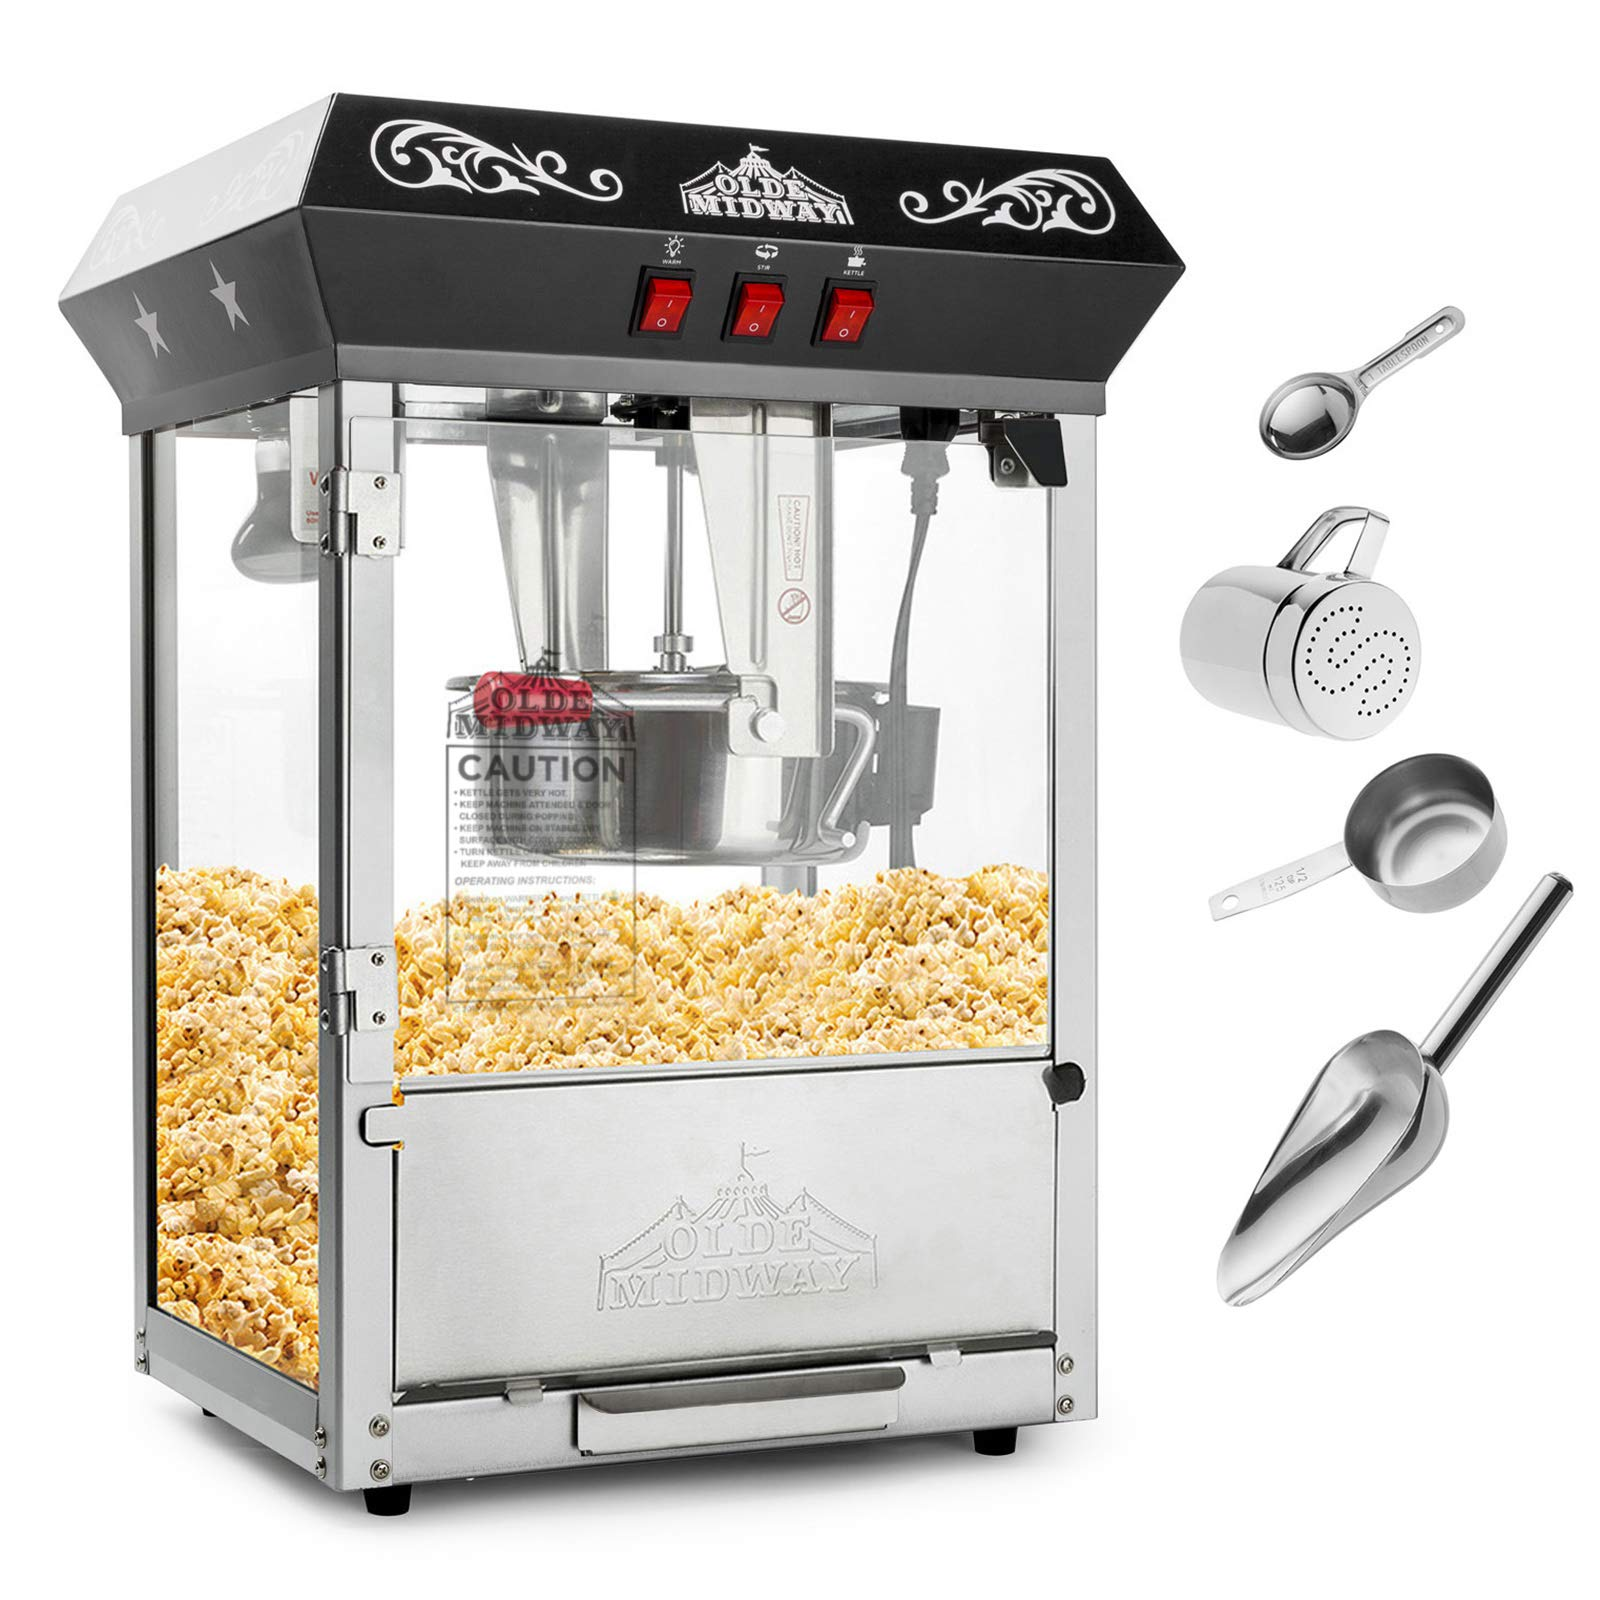 Olde Midway Bar Style Popcorn Machine Maker Popper with 10-Ounce Kettle - Black